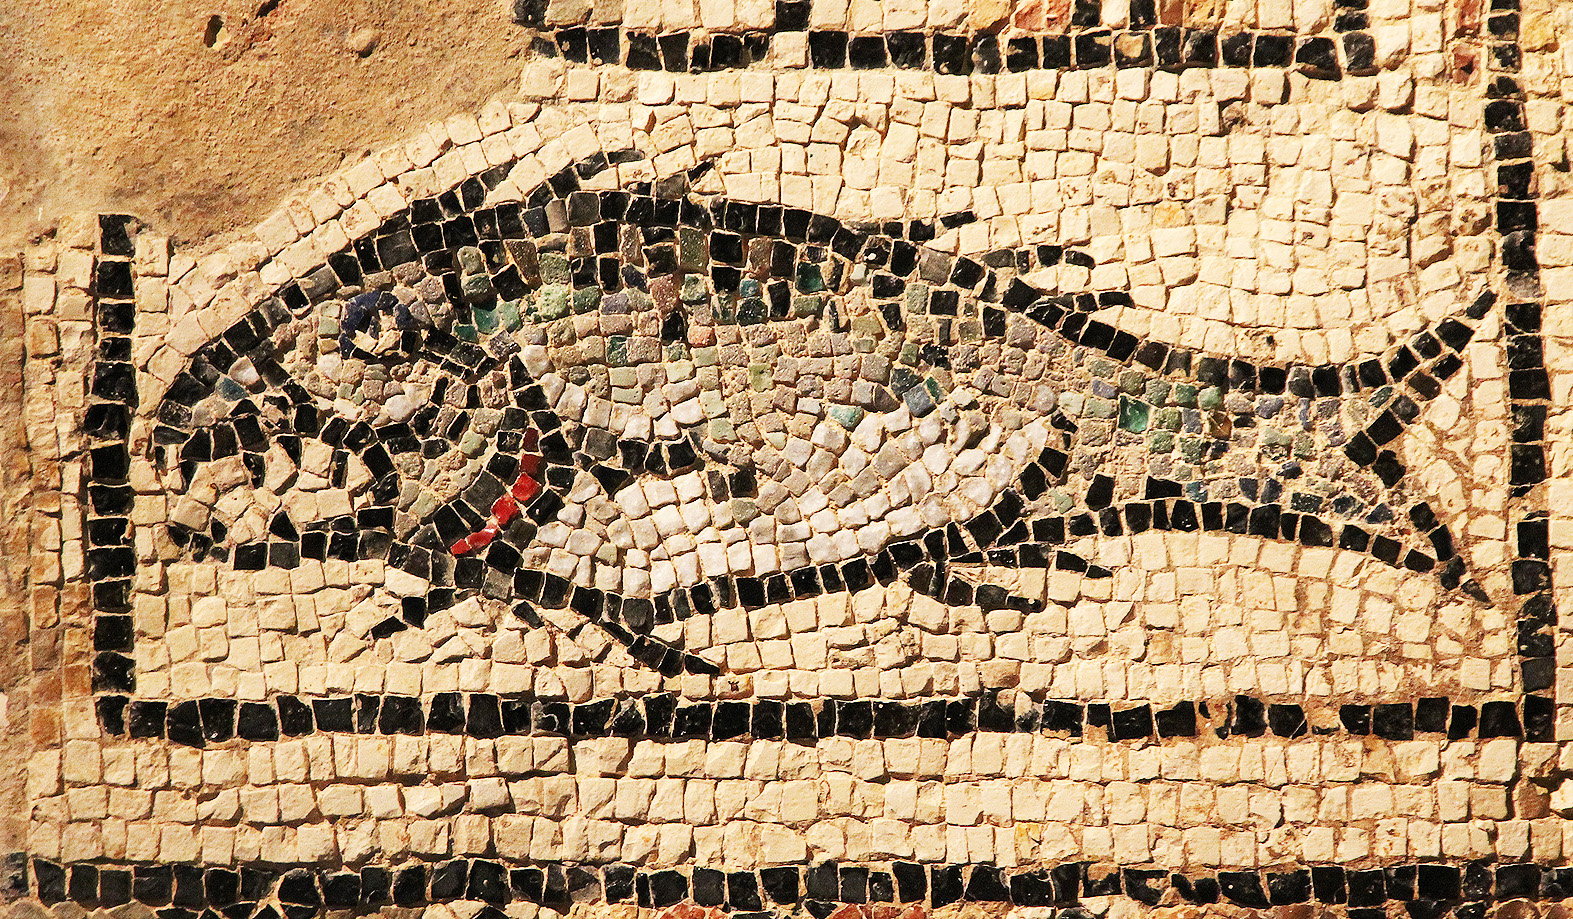 The famous fish mosaic.